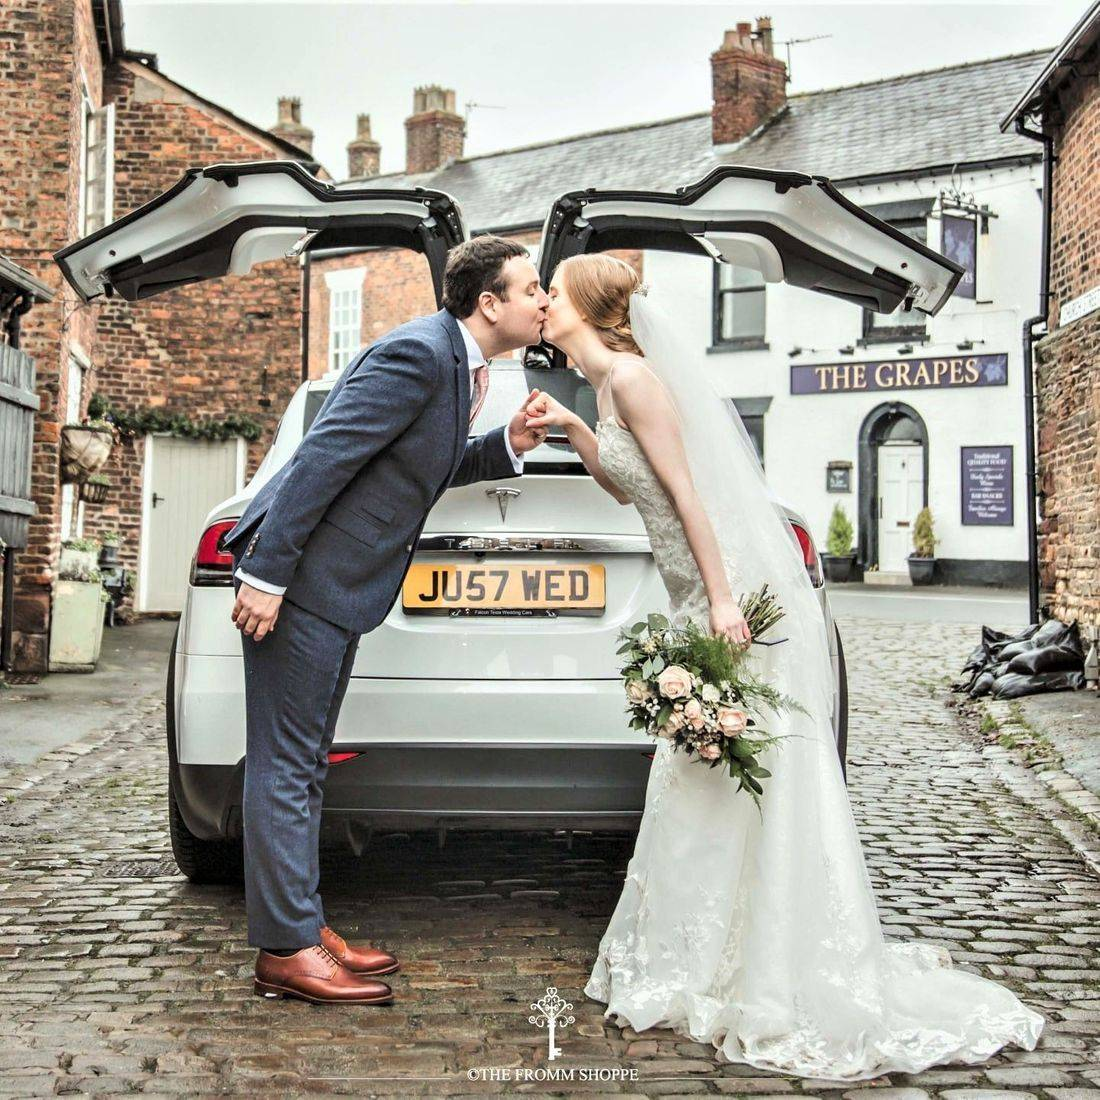 Falcon Tesla Wedding cars Model X